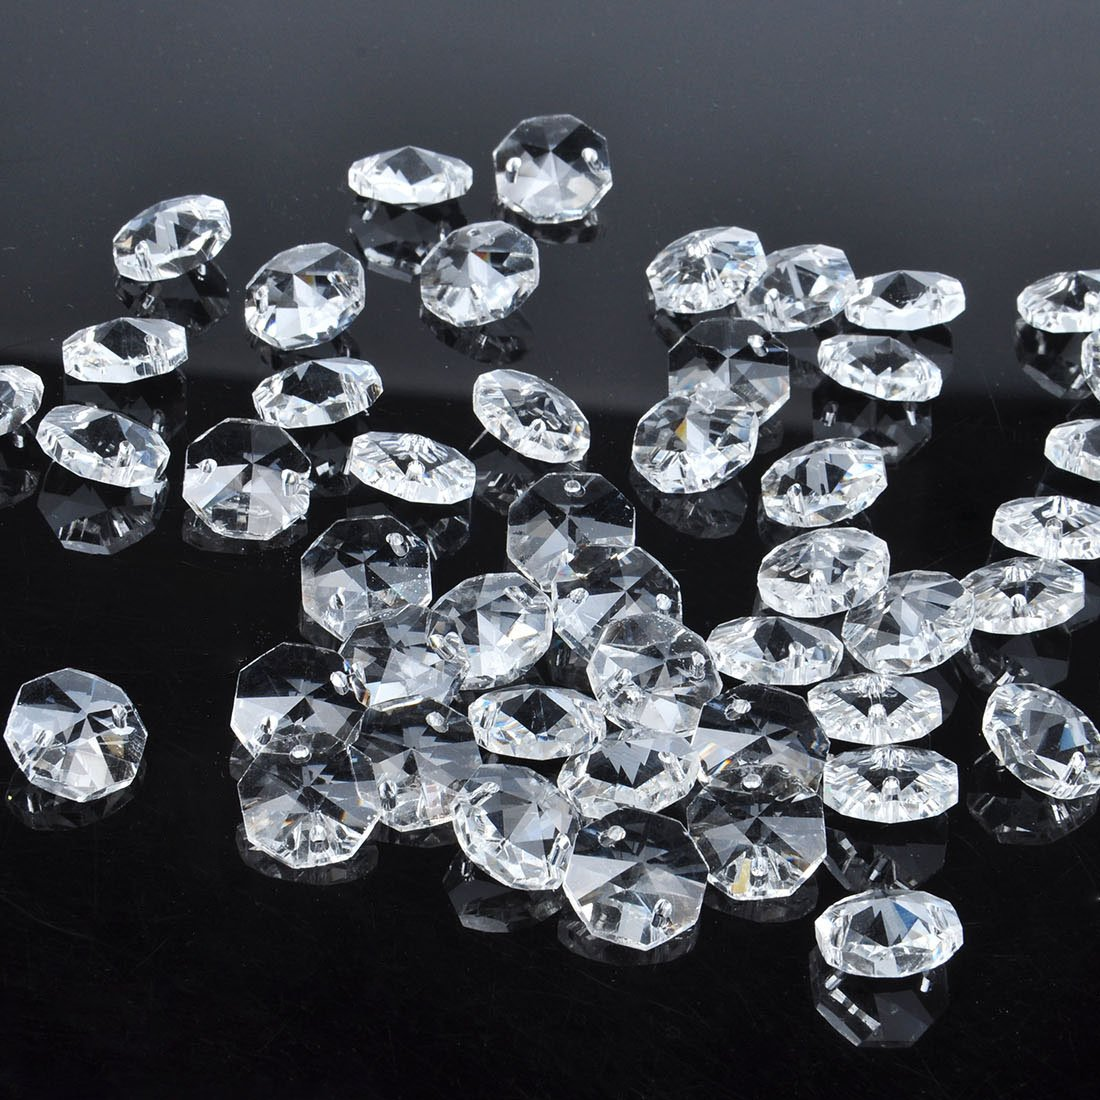 Amazon.com : H&D 50pcs 18mm Clear Crystal 2 Hole Octagon Beads ...